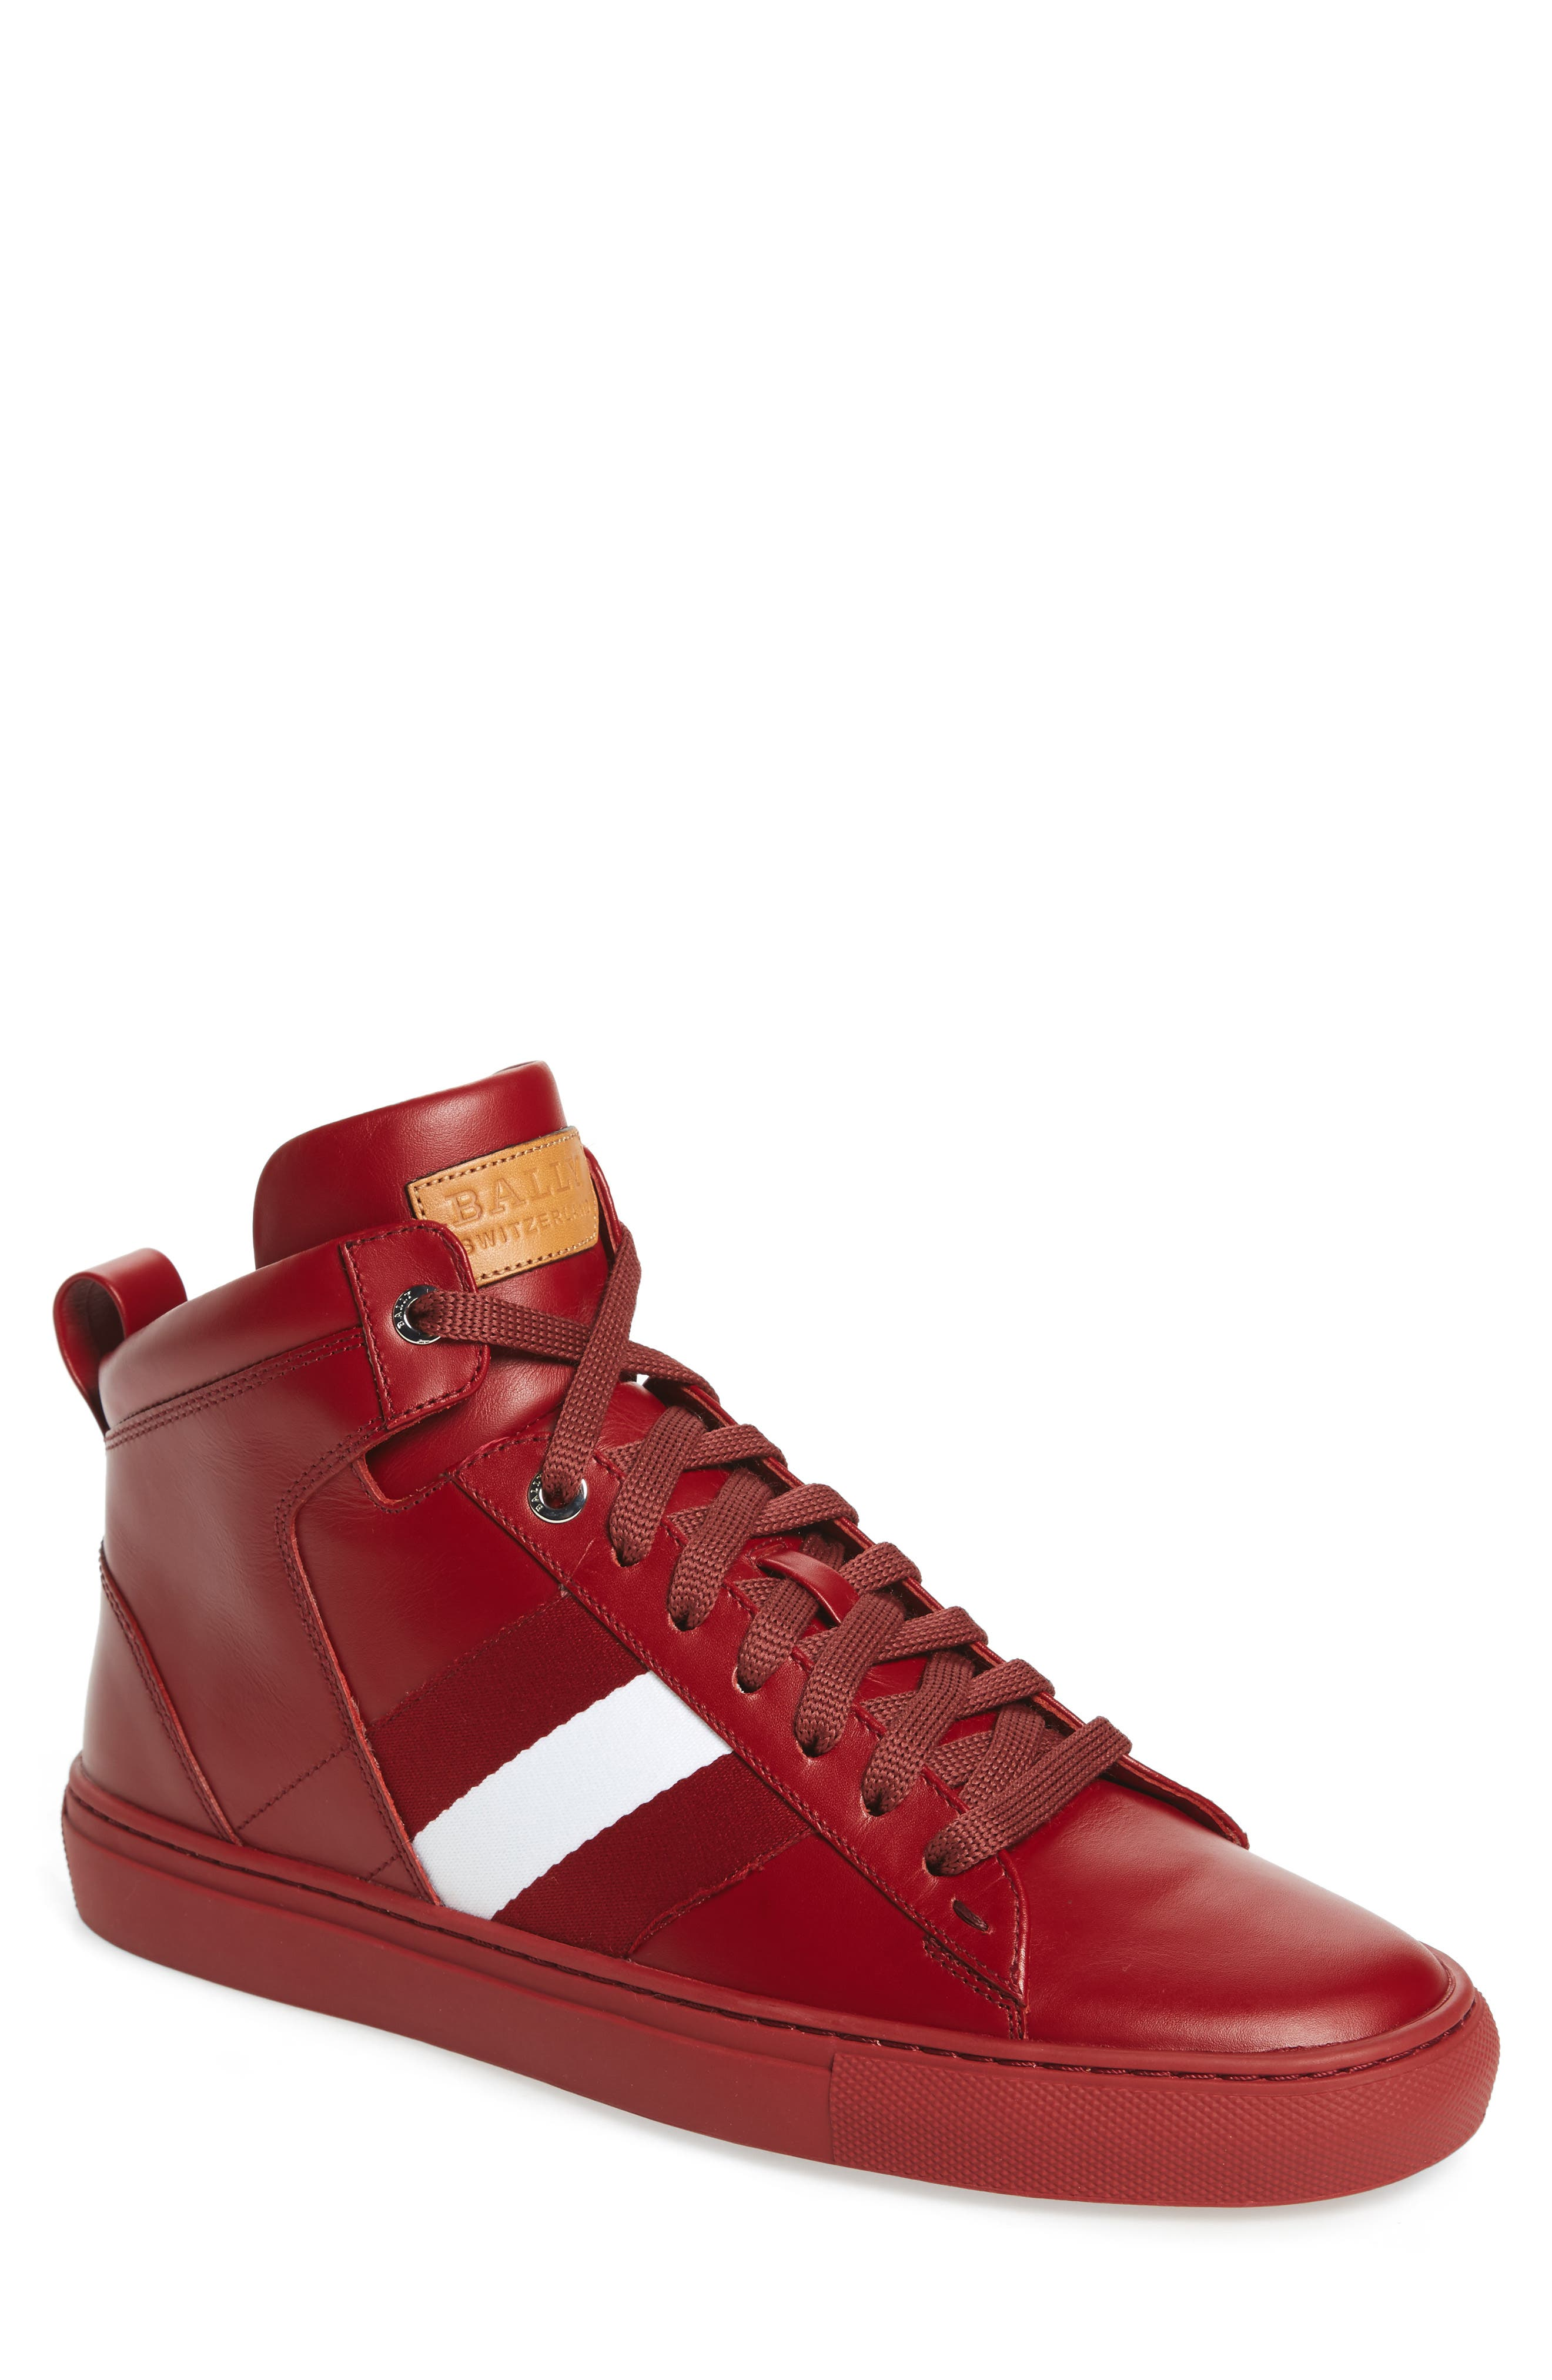 Hedern Sneaker,                         Main,                         color, Red Leather